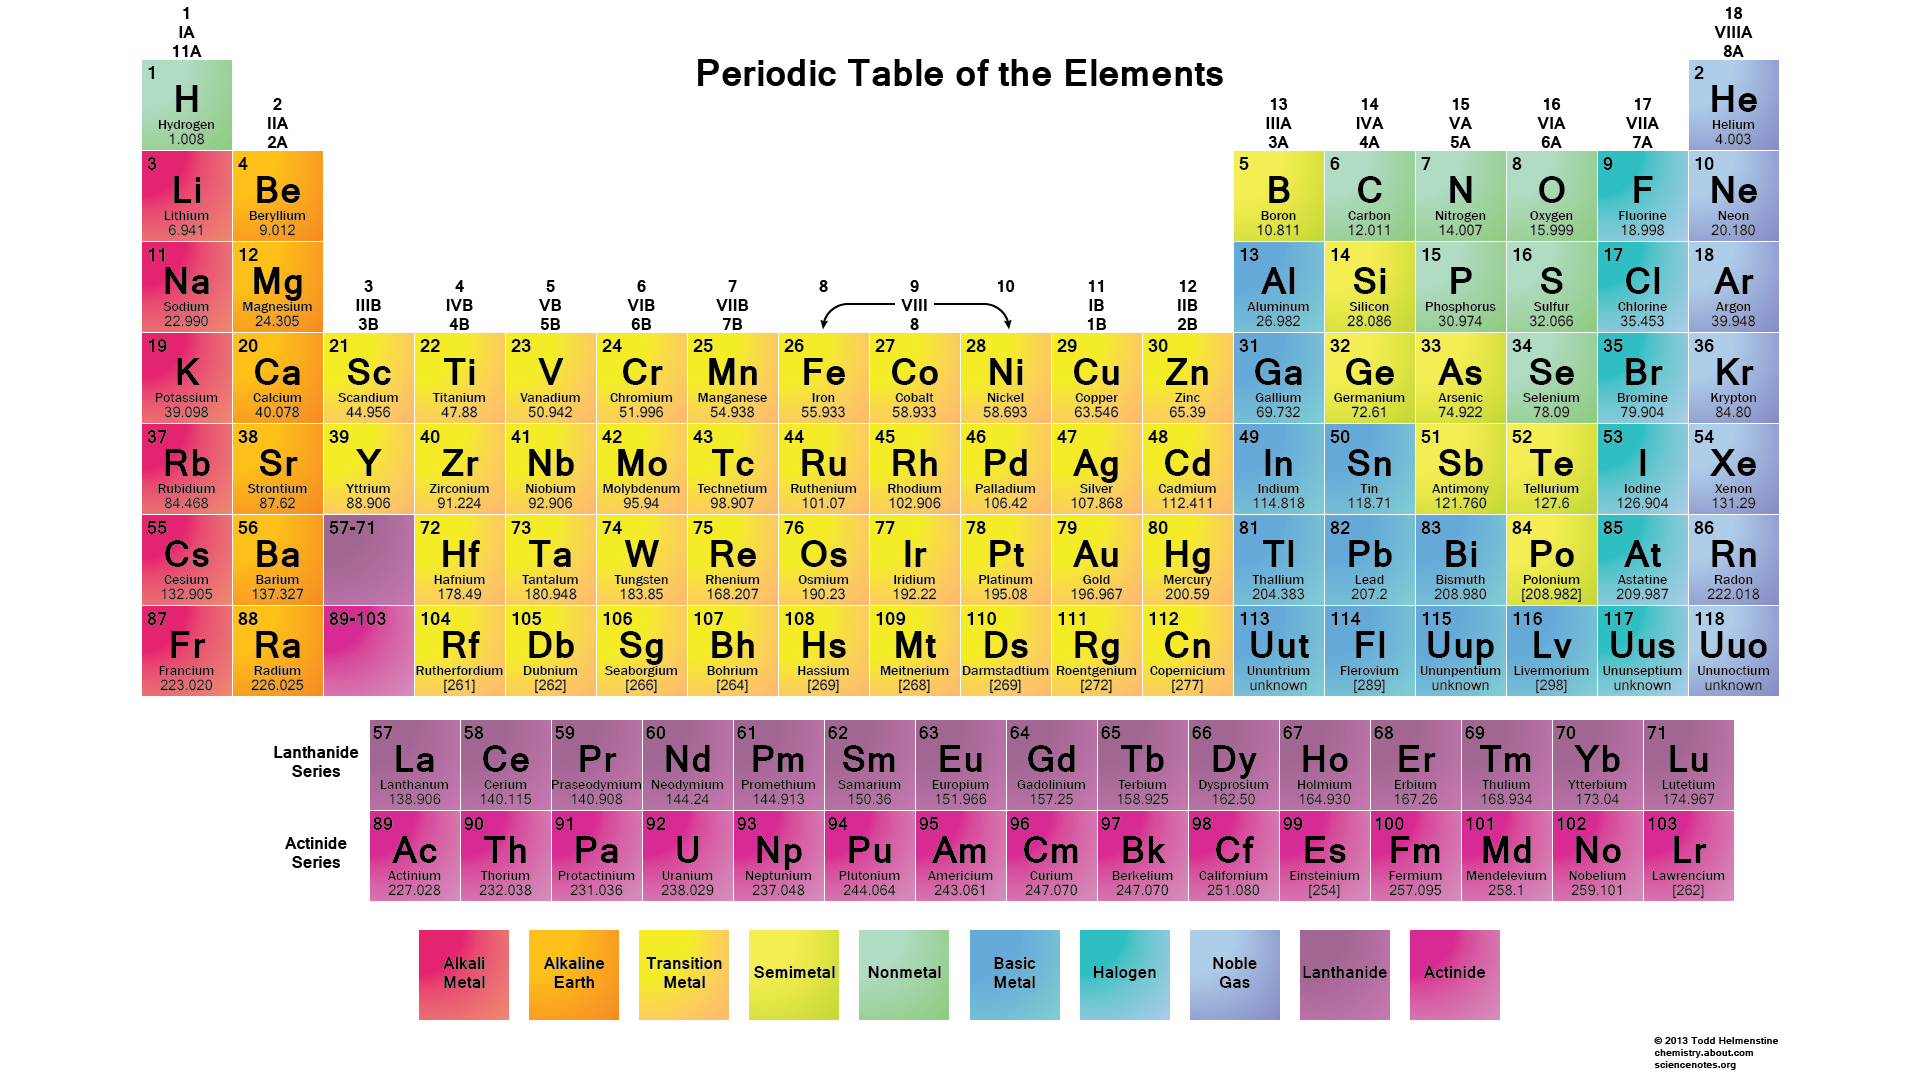 Periodic Tables Of The Elements In American Englishmichael Canov